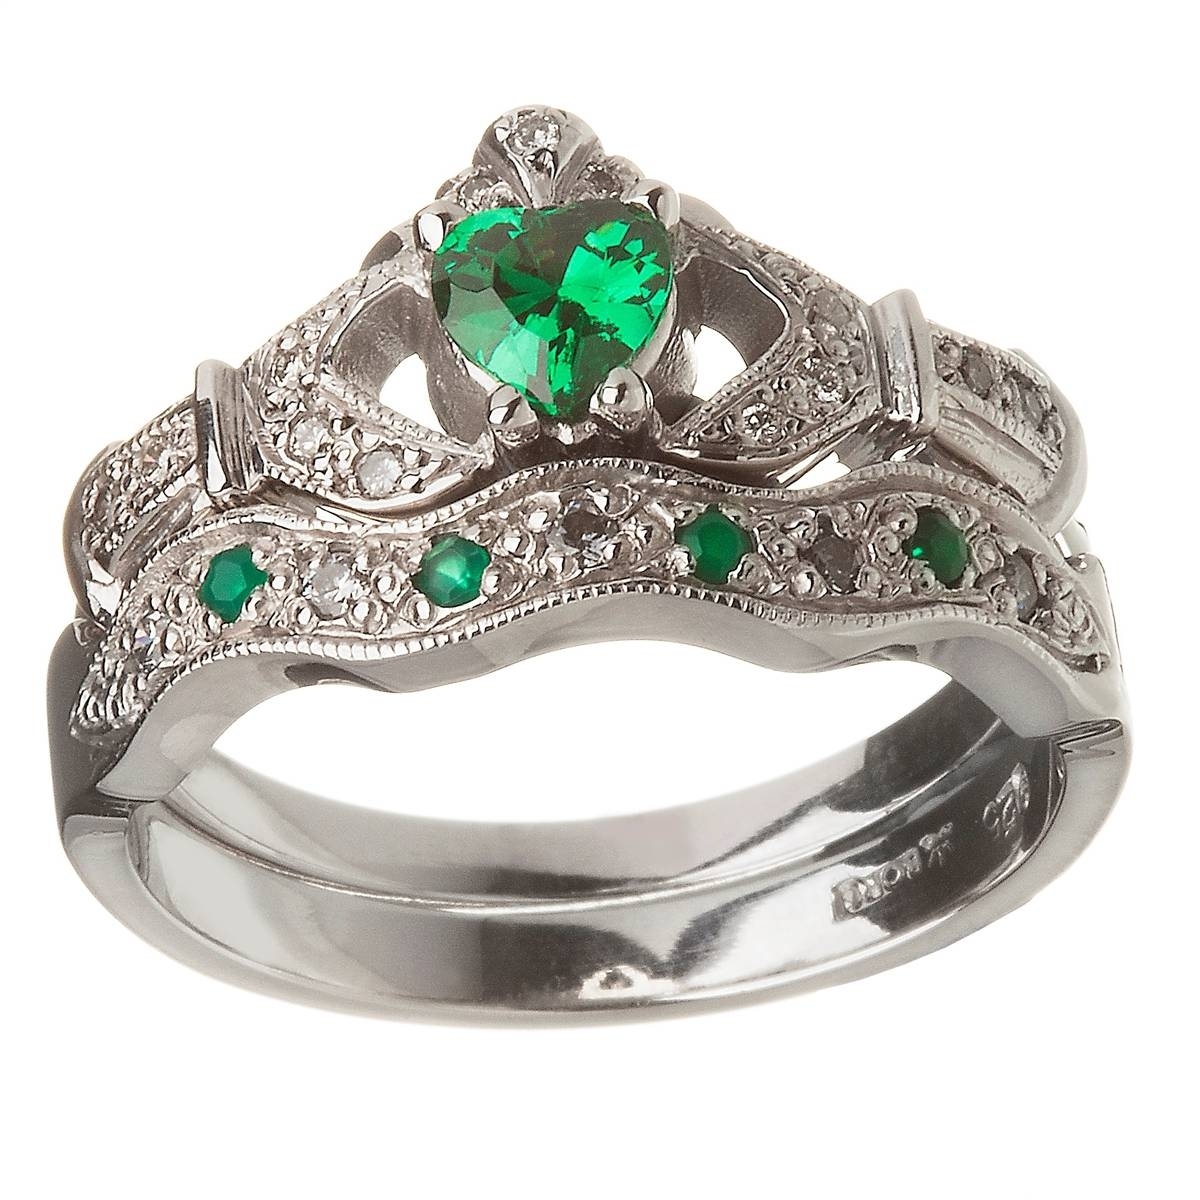 14K White Gold Emerald Set Heart Claddagh Ring & Wedding Ring Set In Irish Emerald Engagement Rings (Gallery 4 of 15)